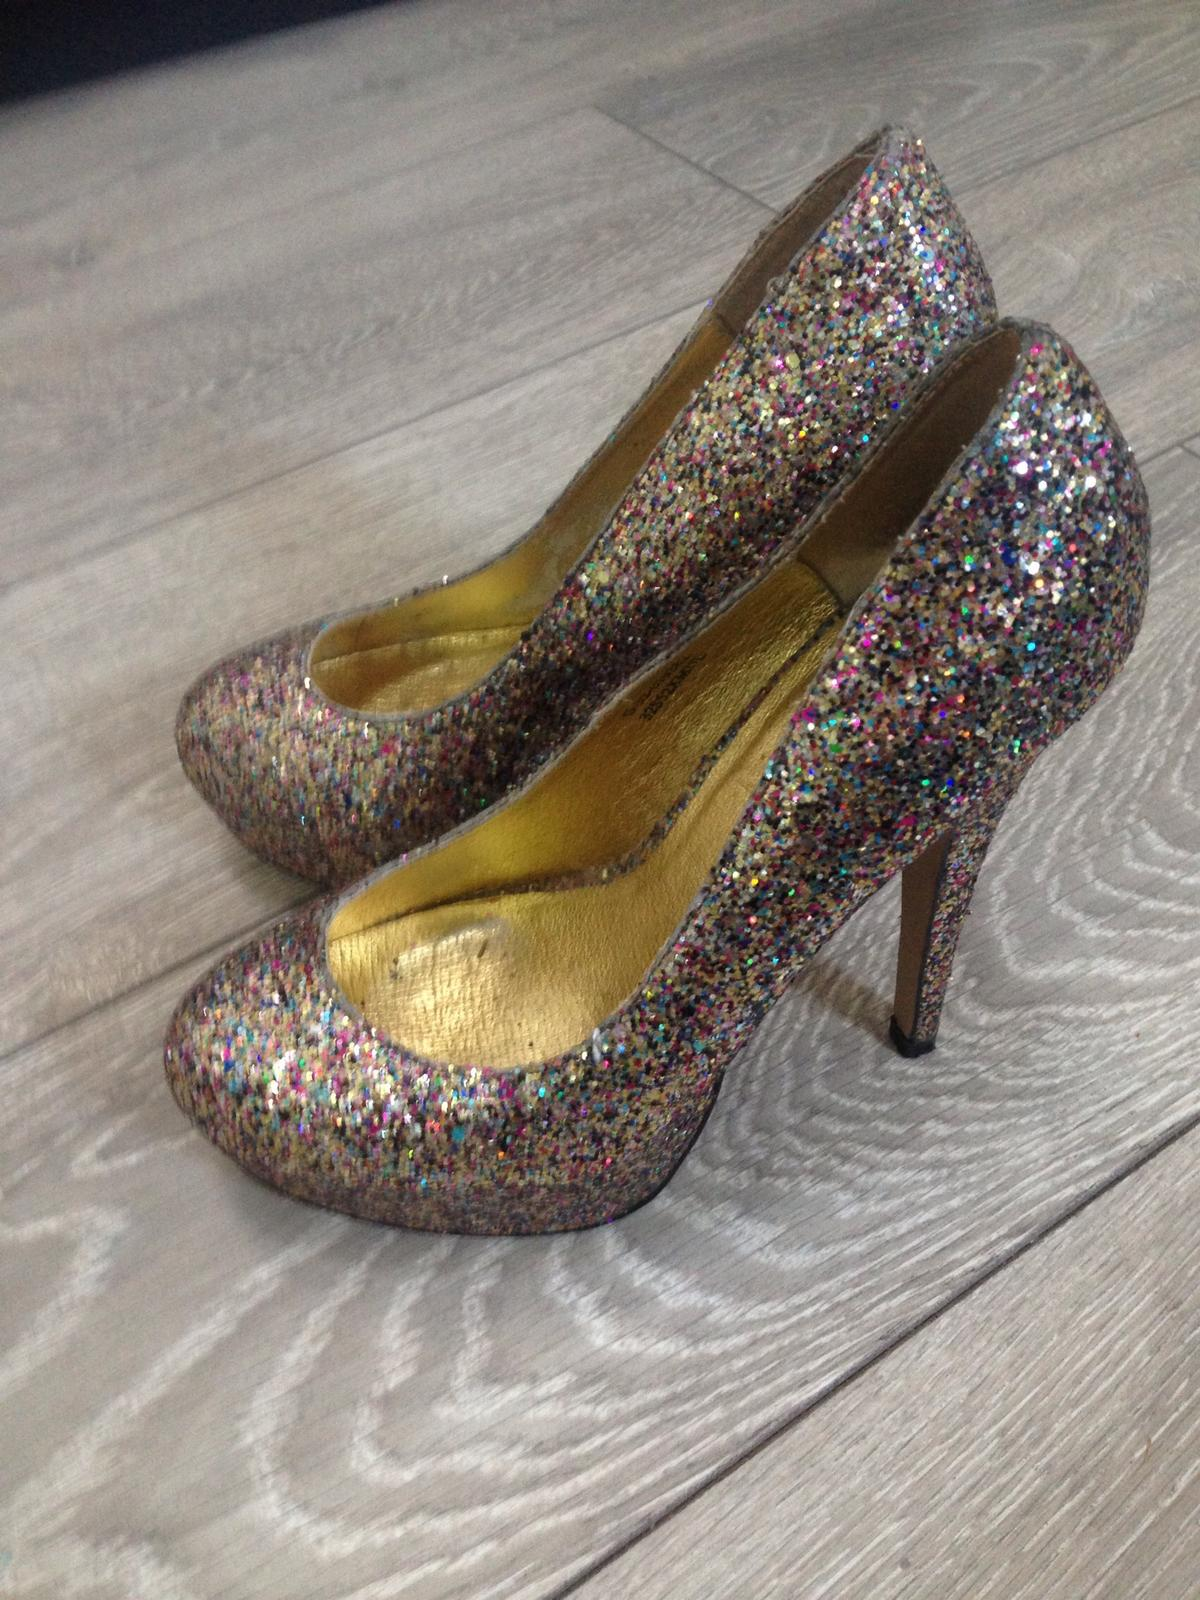 59a5fbf2713a Handmade Glitter Heels Size 5 in RG1 Reading for £5.00 for sale - Shpock